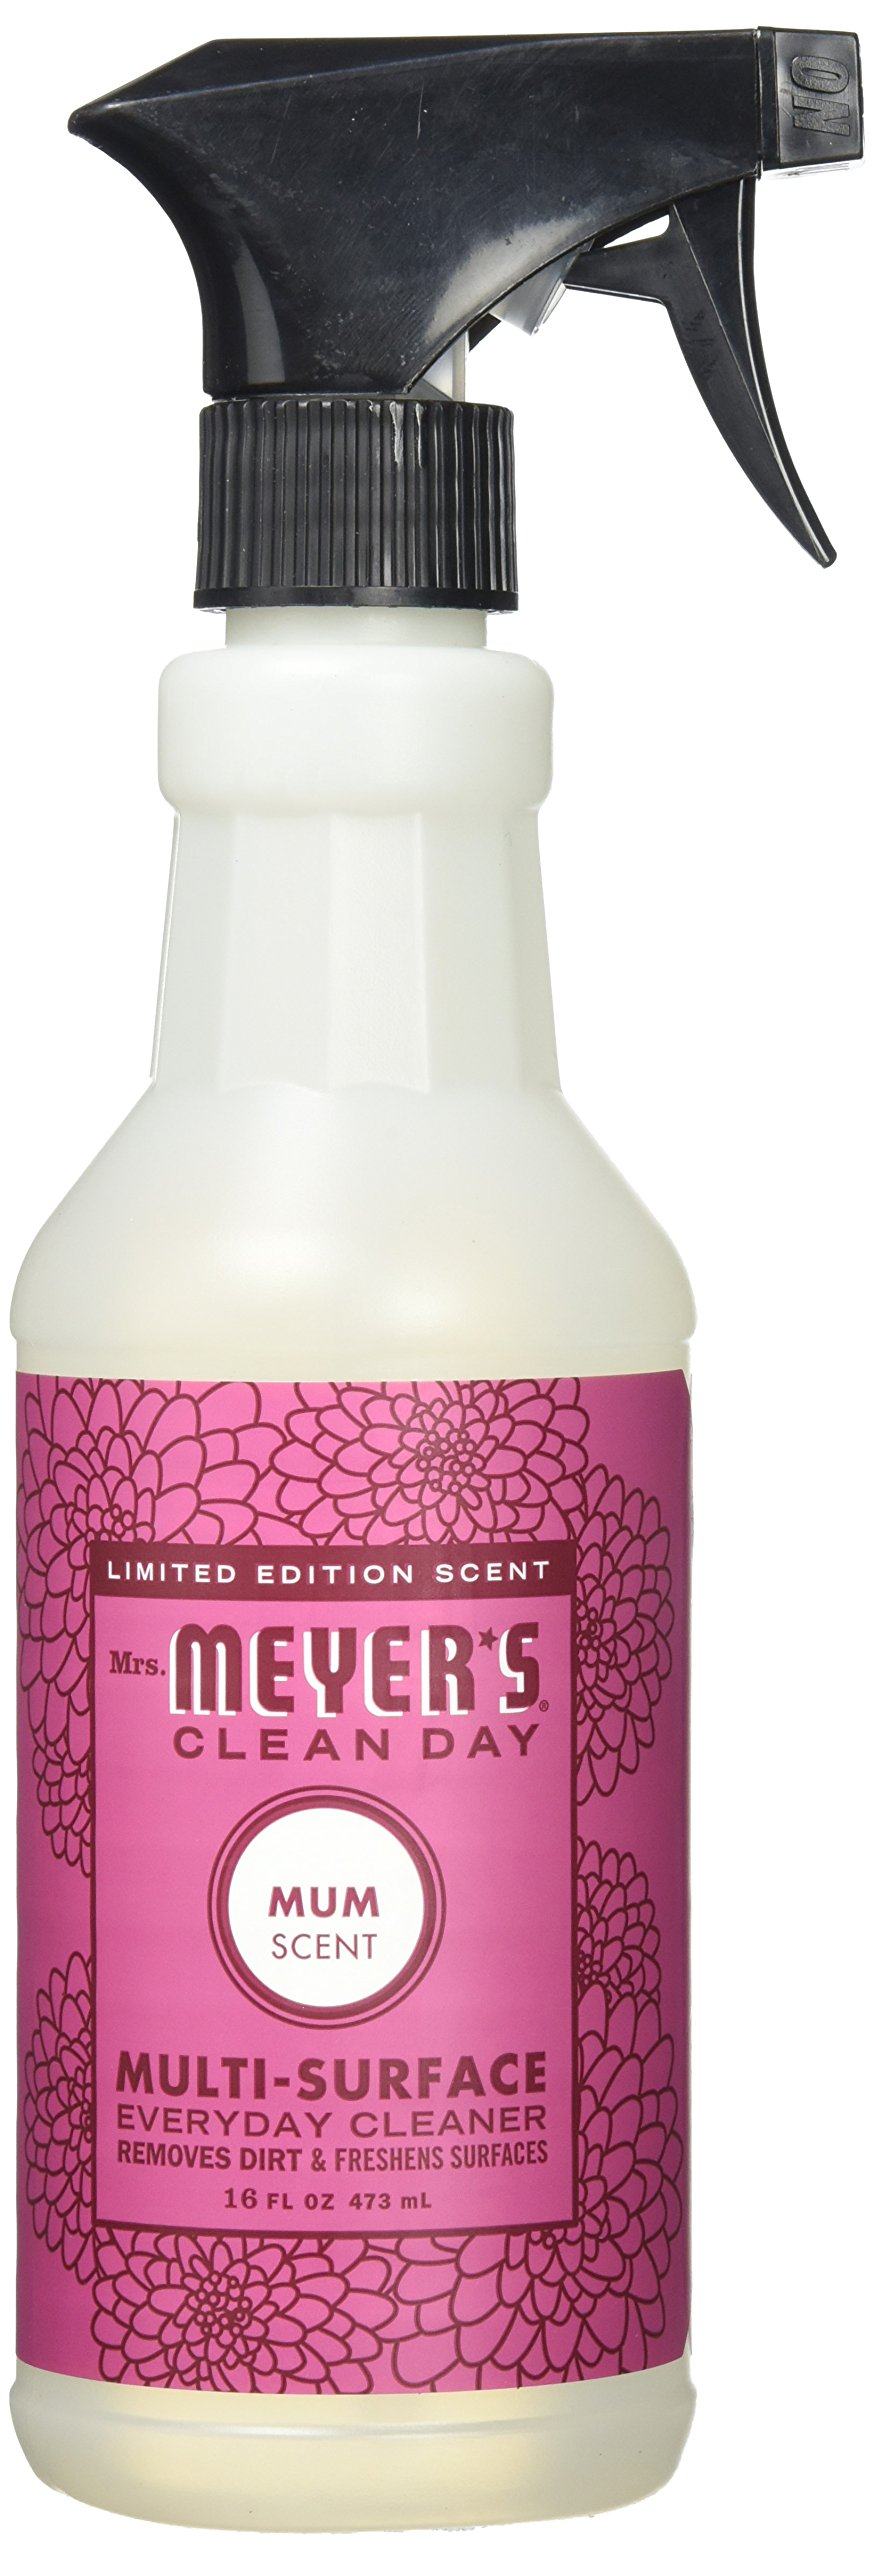 Mrs. Meyer's Clean Day Multi-surface Everyday Cleaner, Mum, 16 Fluid Ounce